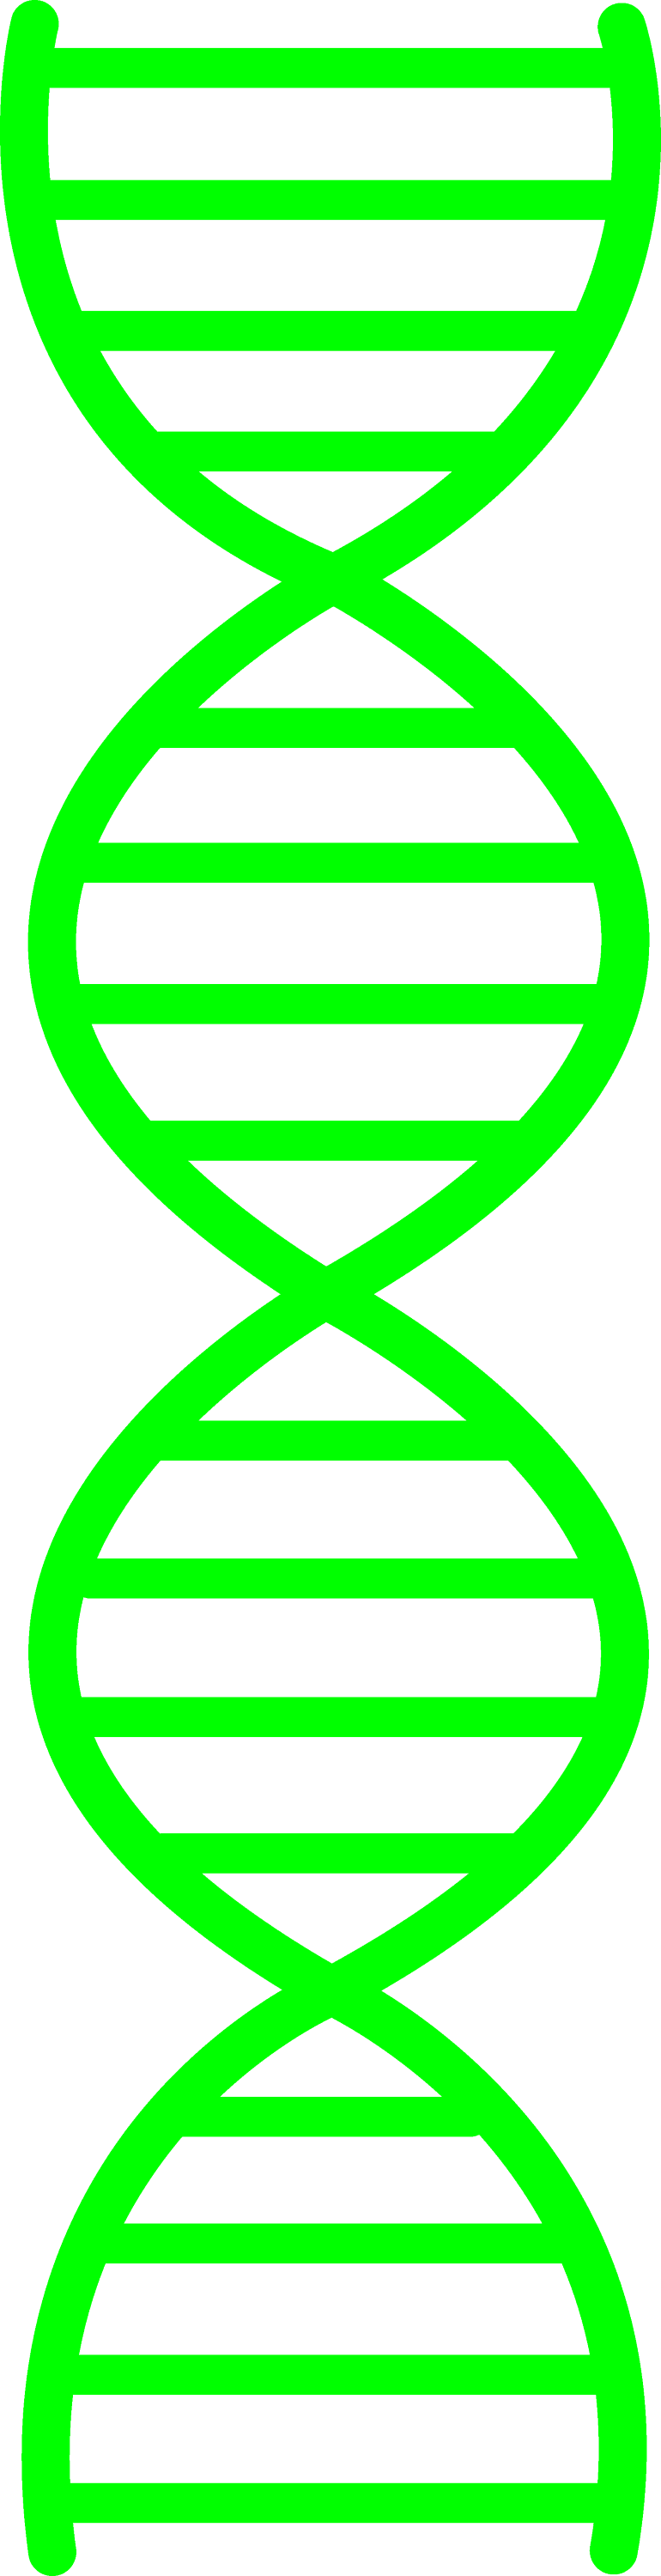 Green DNA Design - Free Clip Art